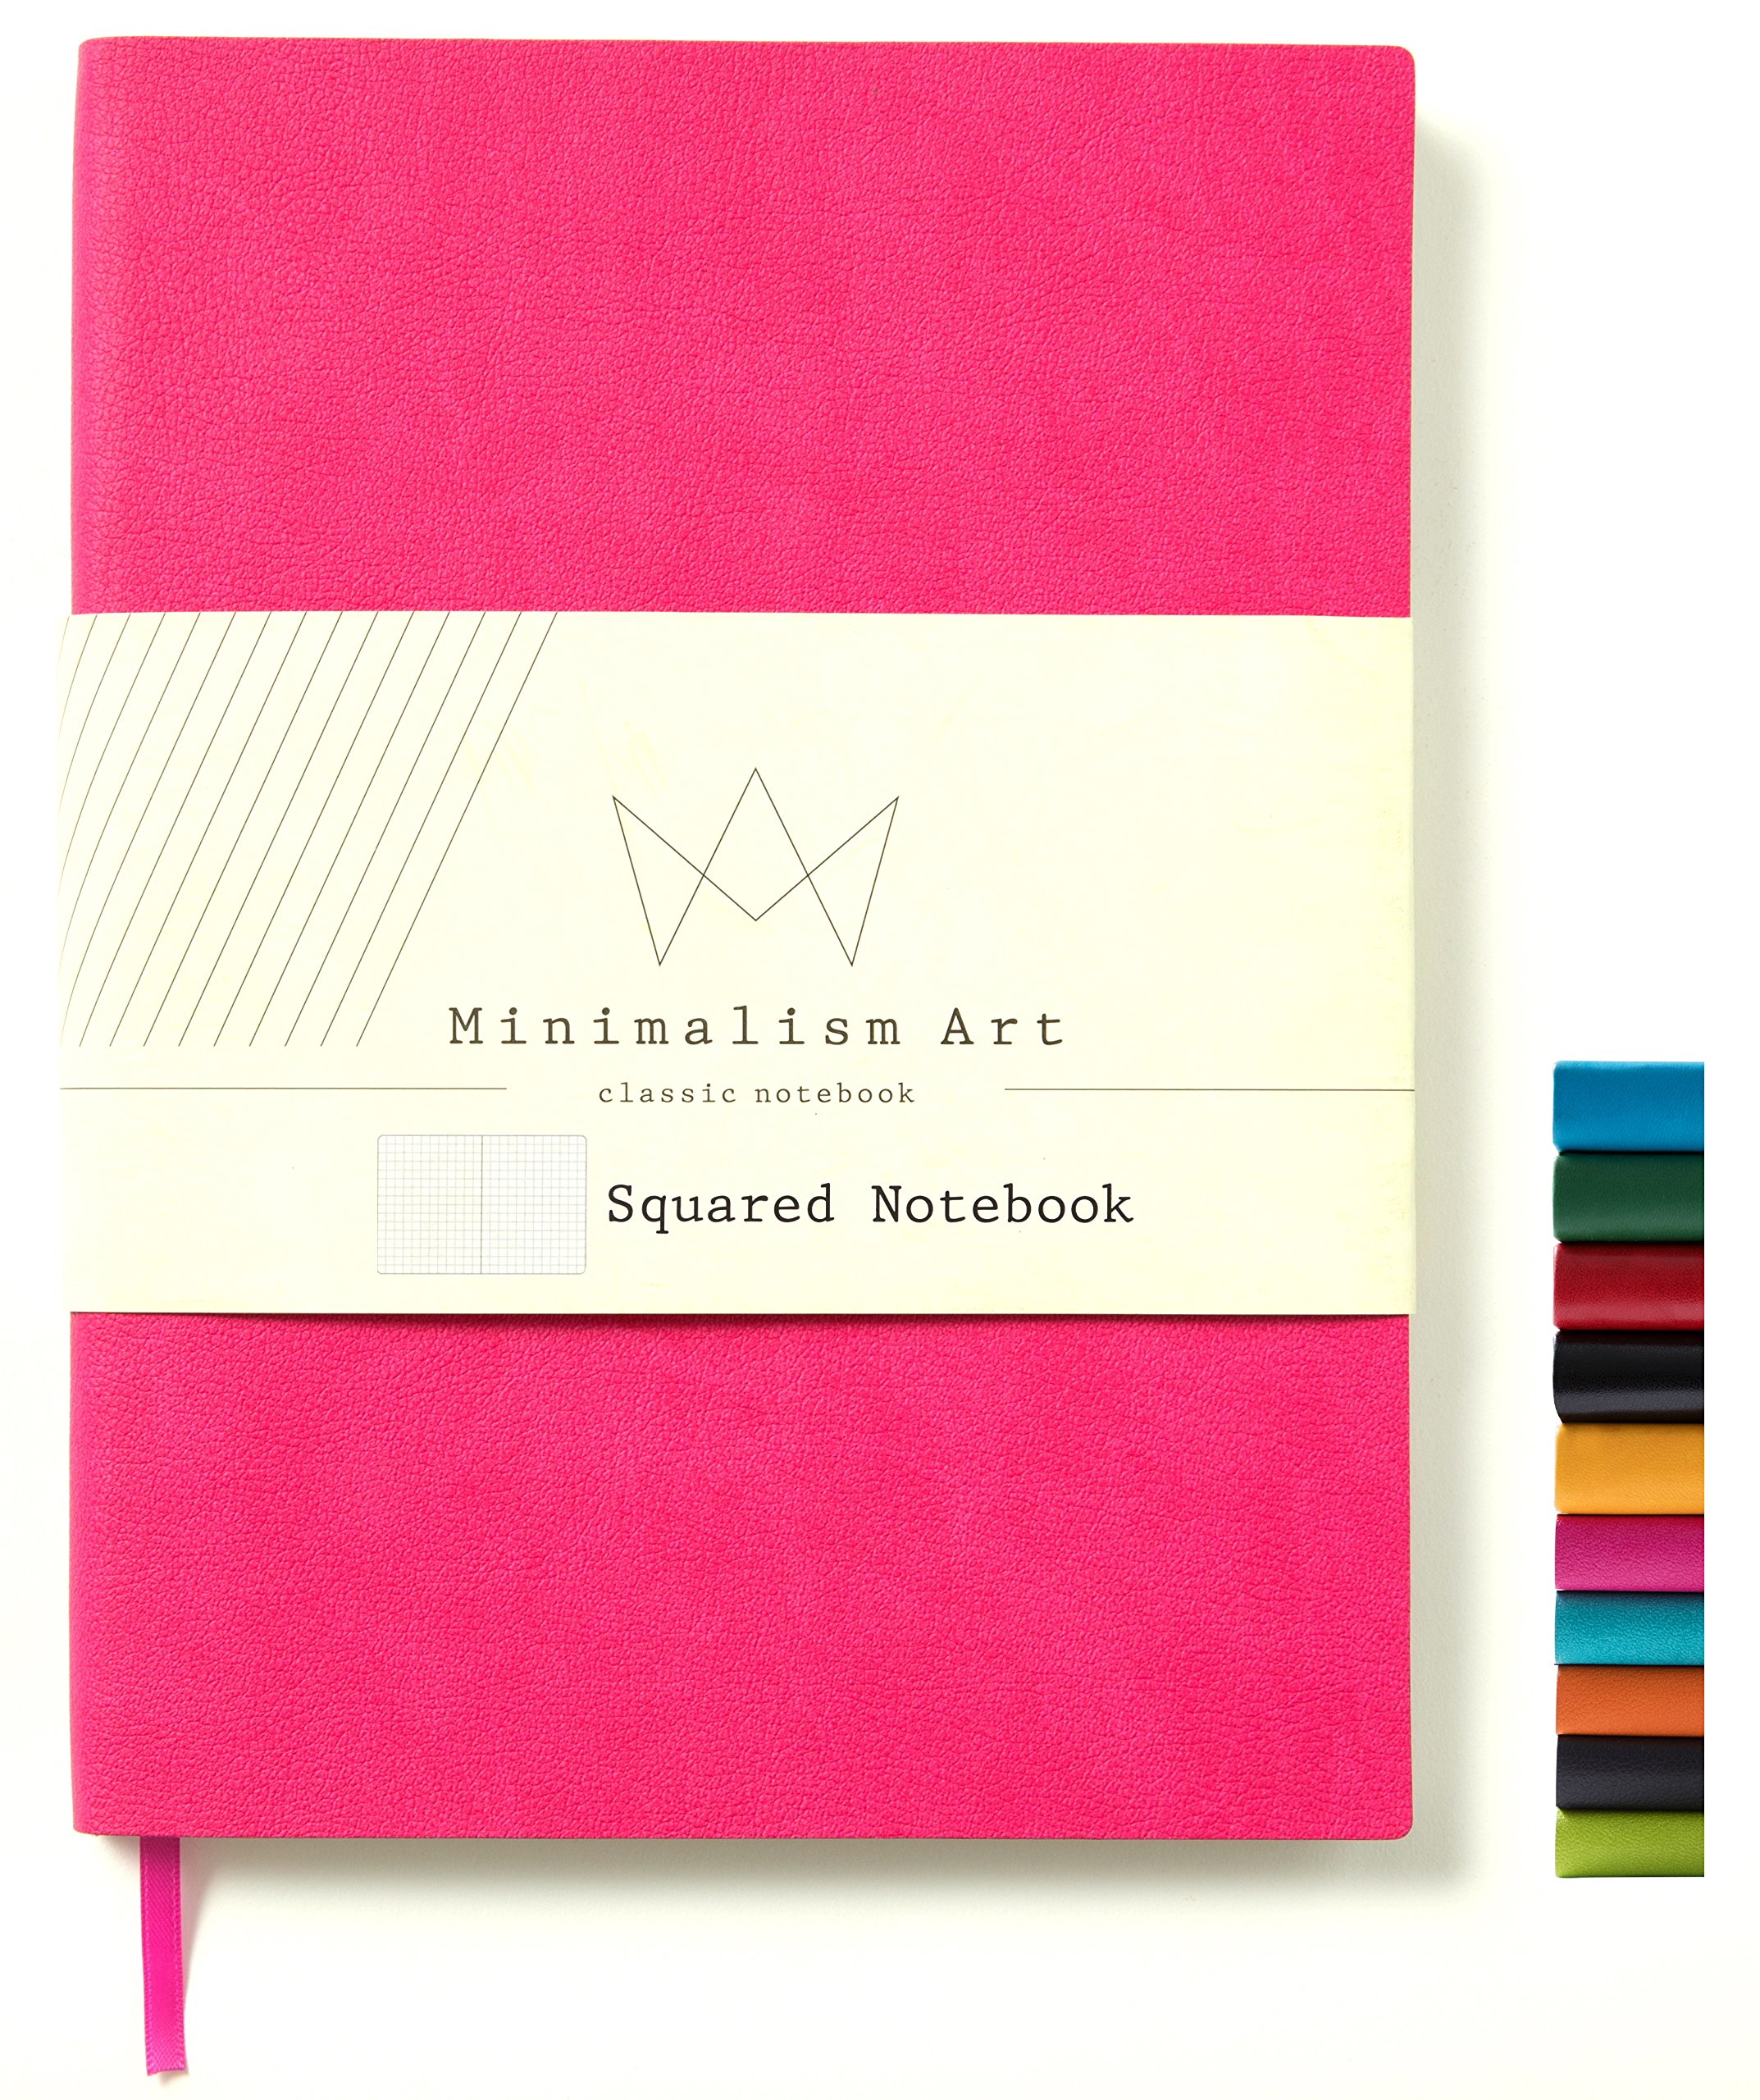 Minimalism Art | Soft Cover Notebook Journal, Size: 7.6'' X 10''; B5+, Berry, Squared Grid Page, 192 Pages, Fine PU Leather, Premium Thick Paper - 100gsm | Designed in San Francisco